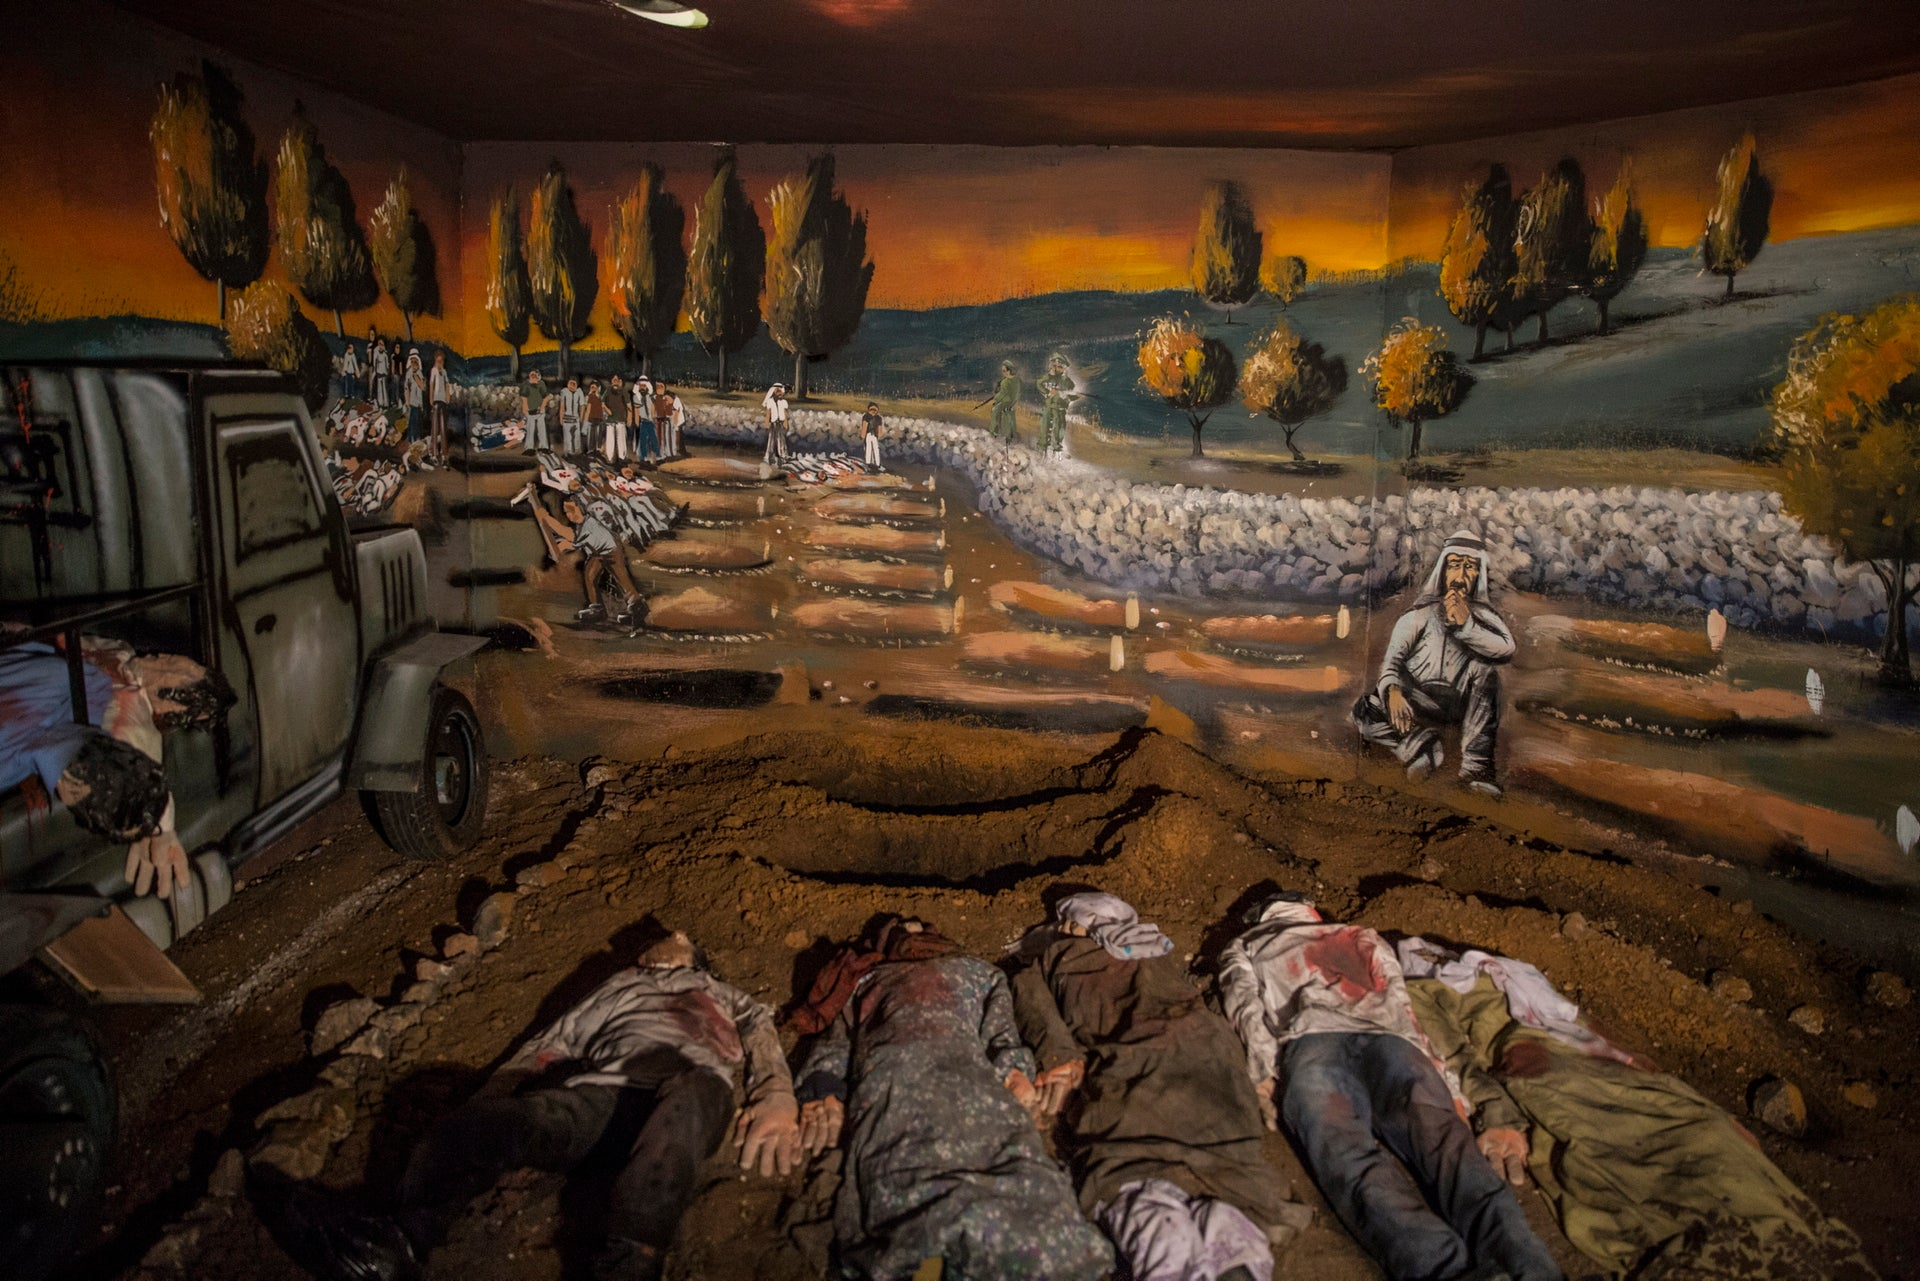 The exhibition commemorating the Kafr Qasem massacre.